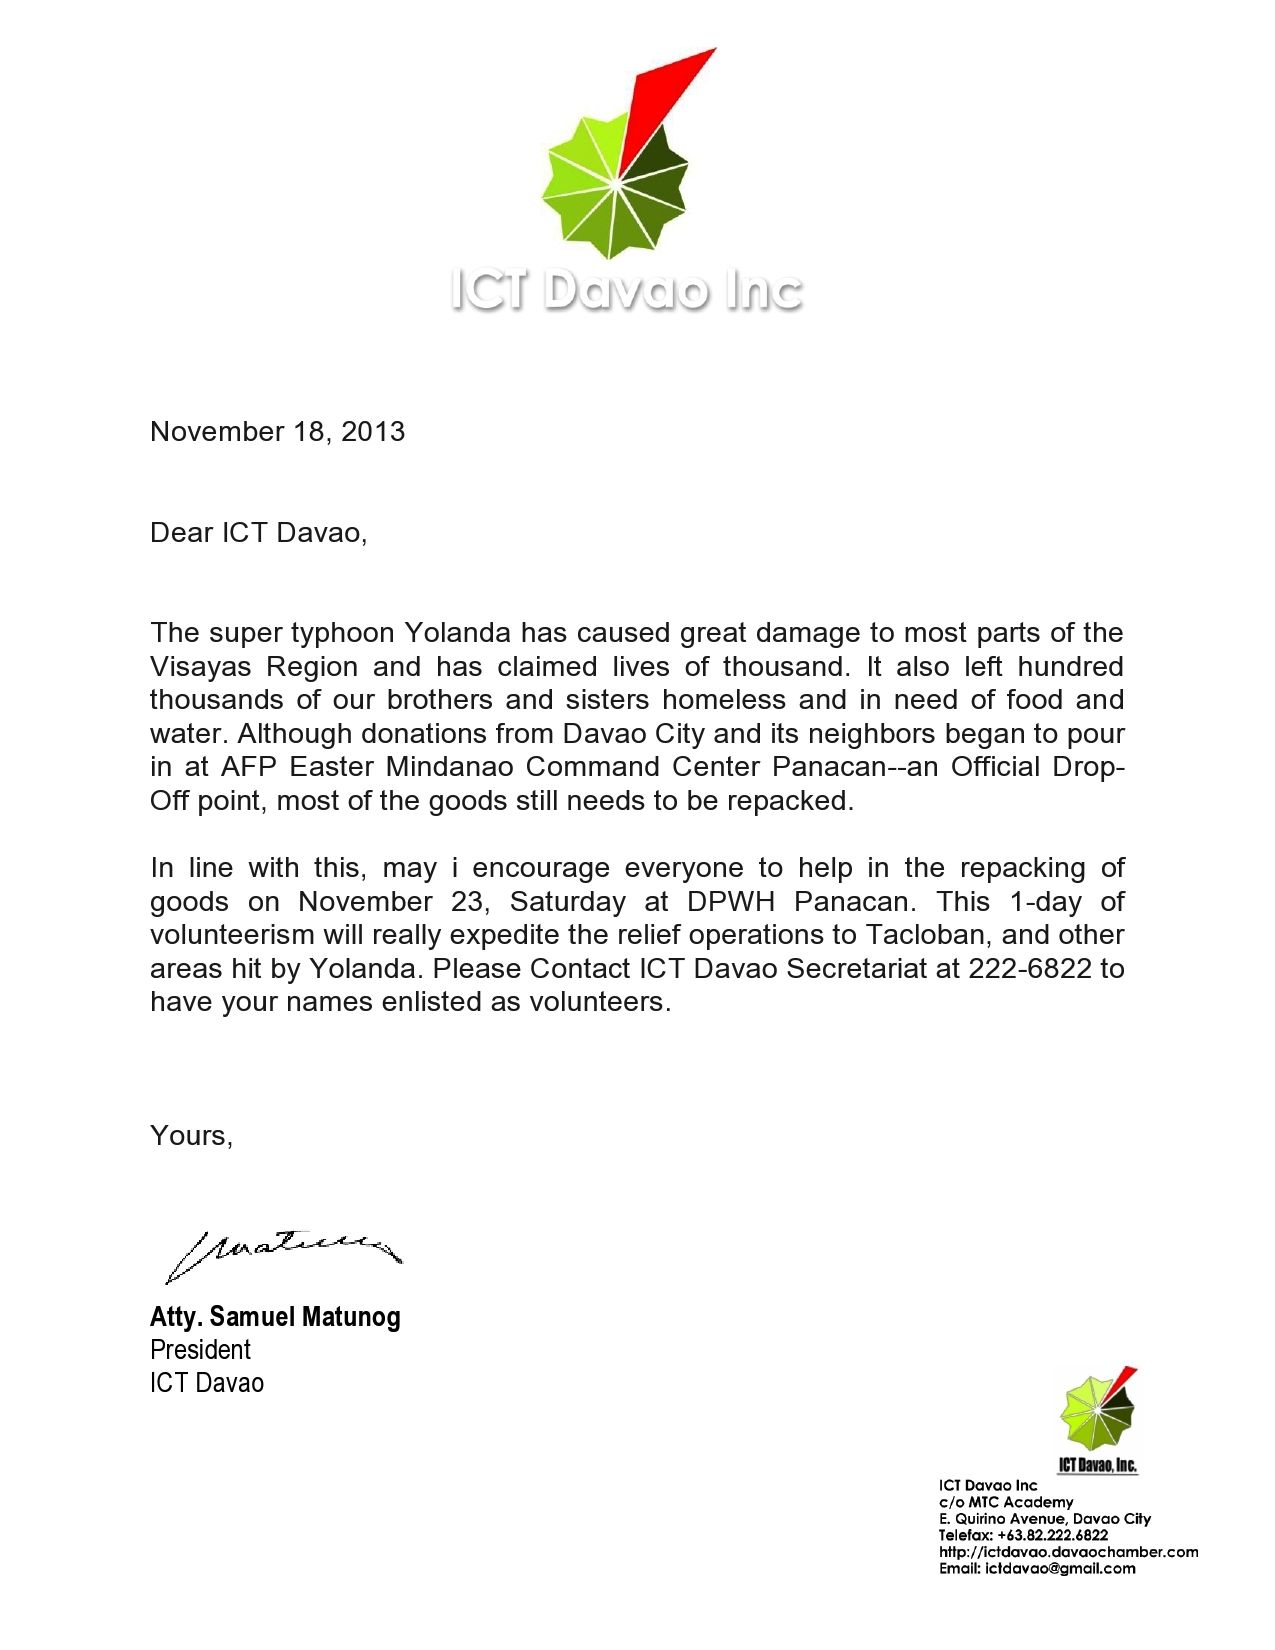 ictdavao volunteer workvolunteer letter template application ictdavao volunteer workvolunteer letter template application letter sample